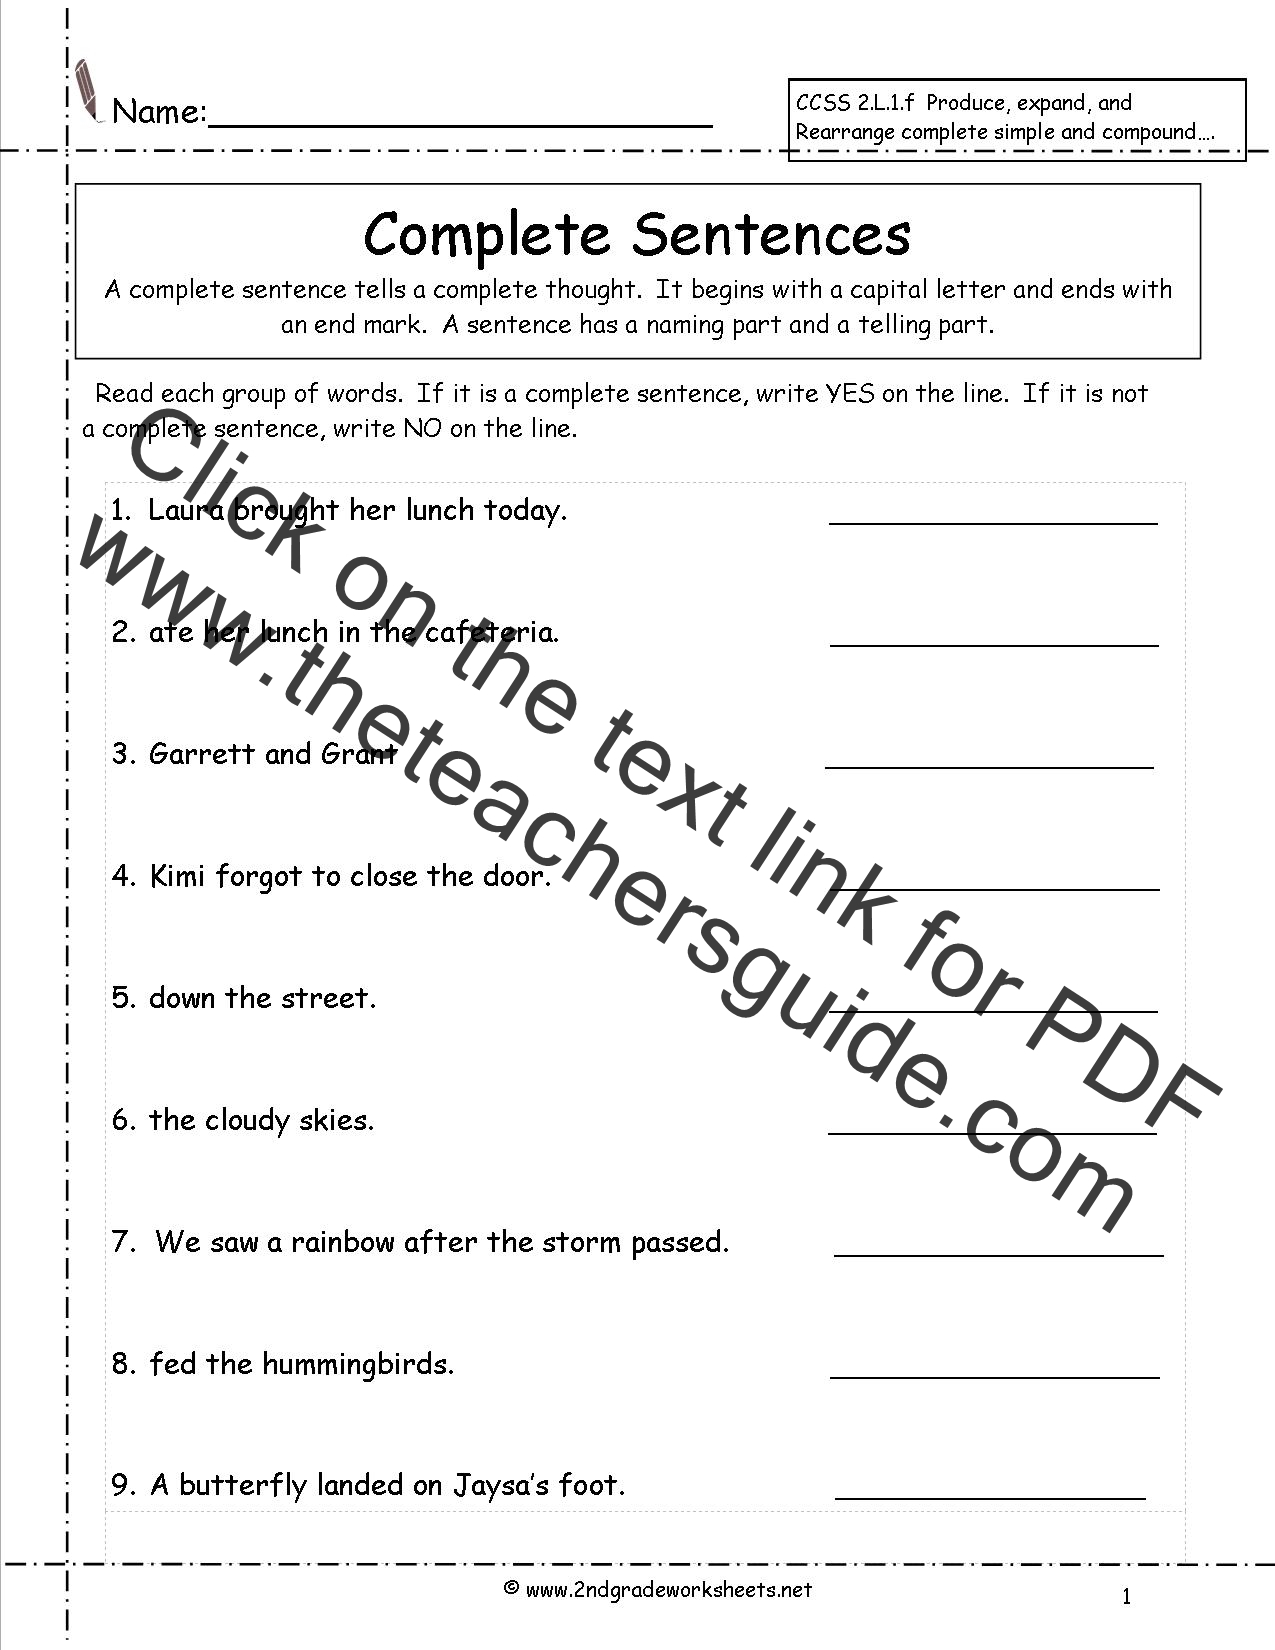 Worksheets Writing Complete Sentences Worksheets second grade sentences worksheets ccss 2 l 1 f complete worksheets